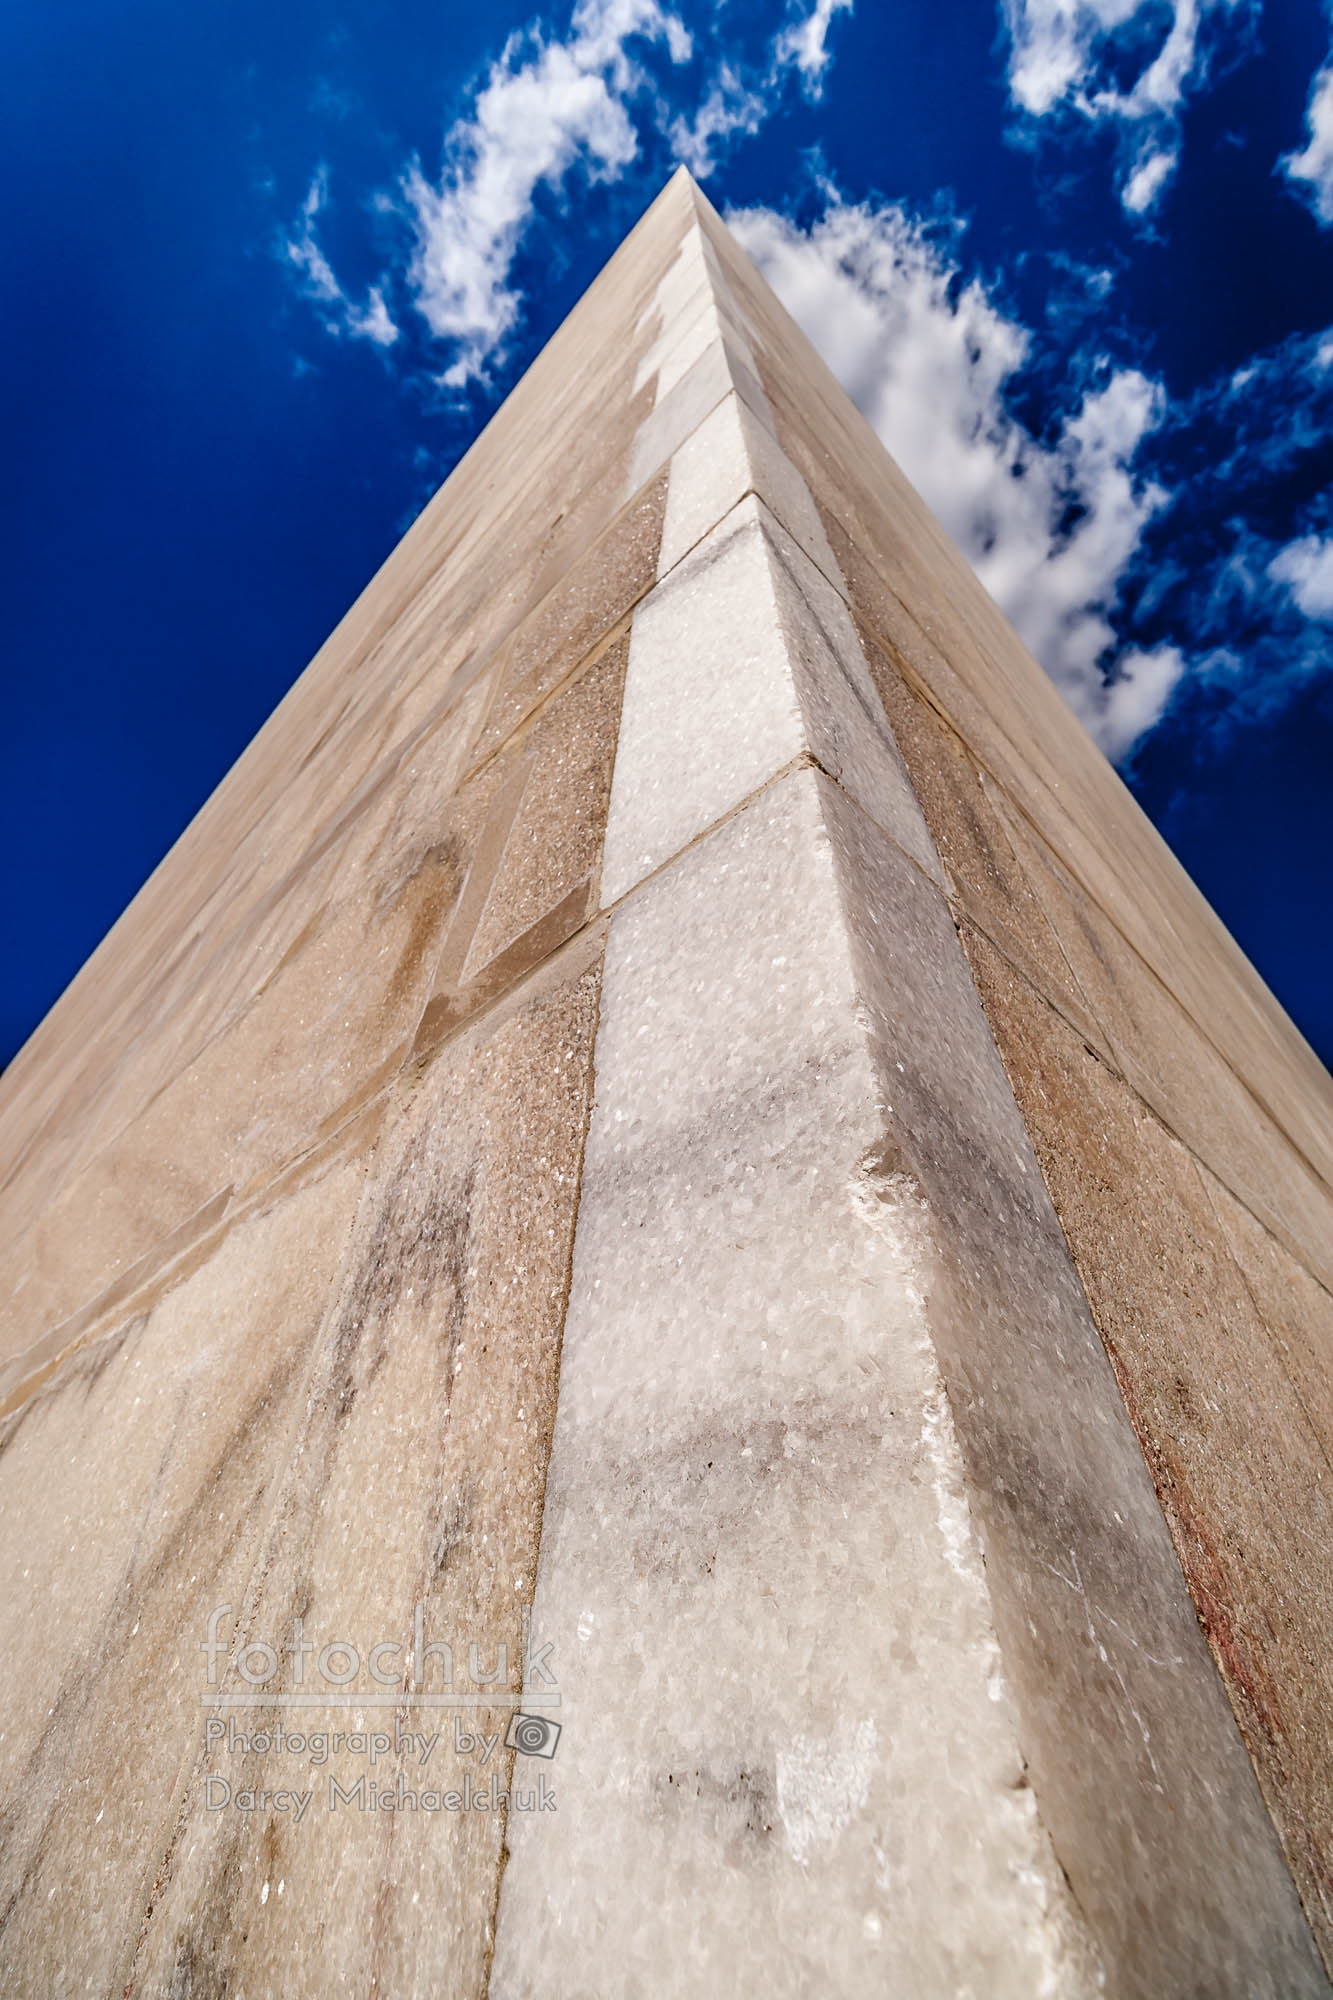 Obelisk Piercing the Sky